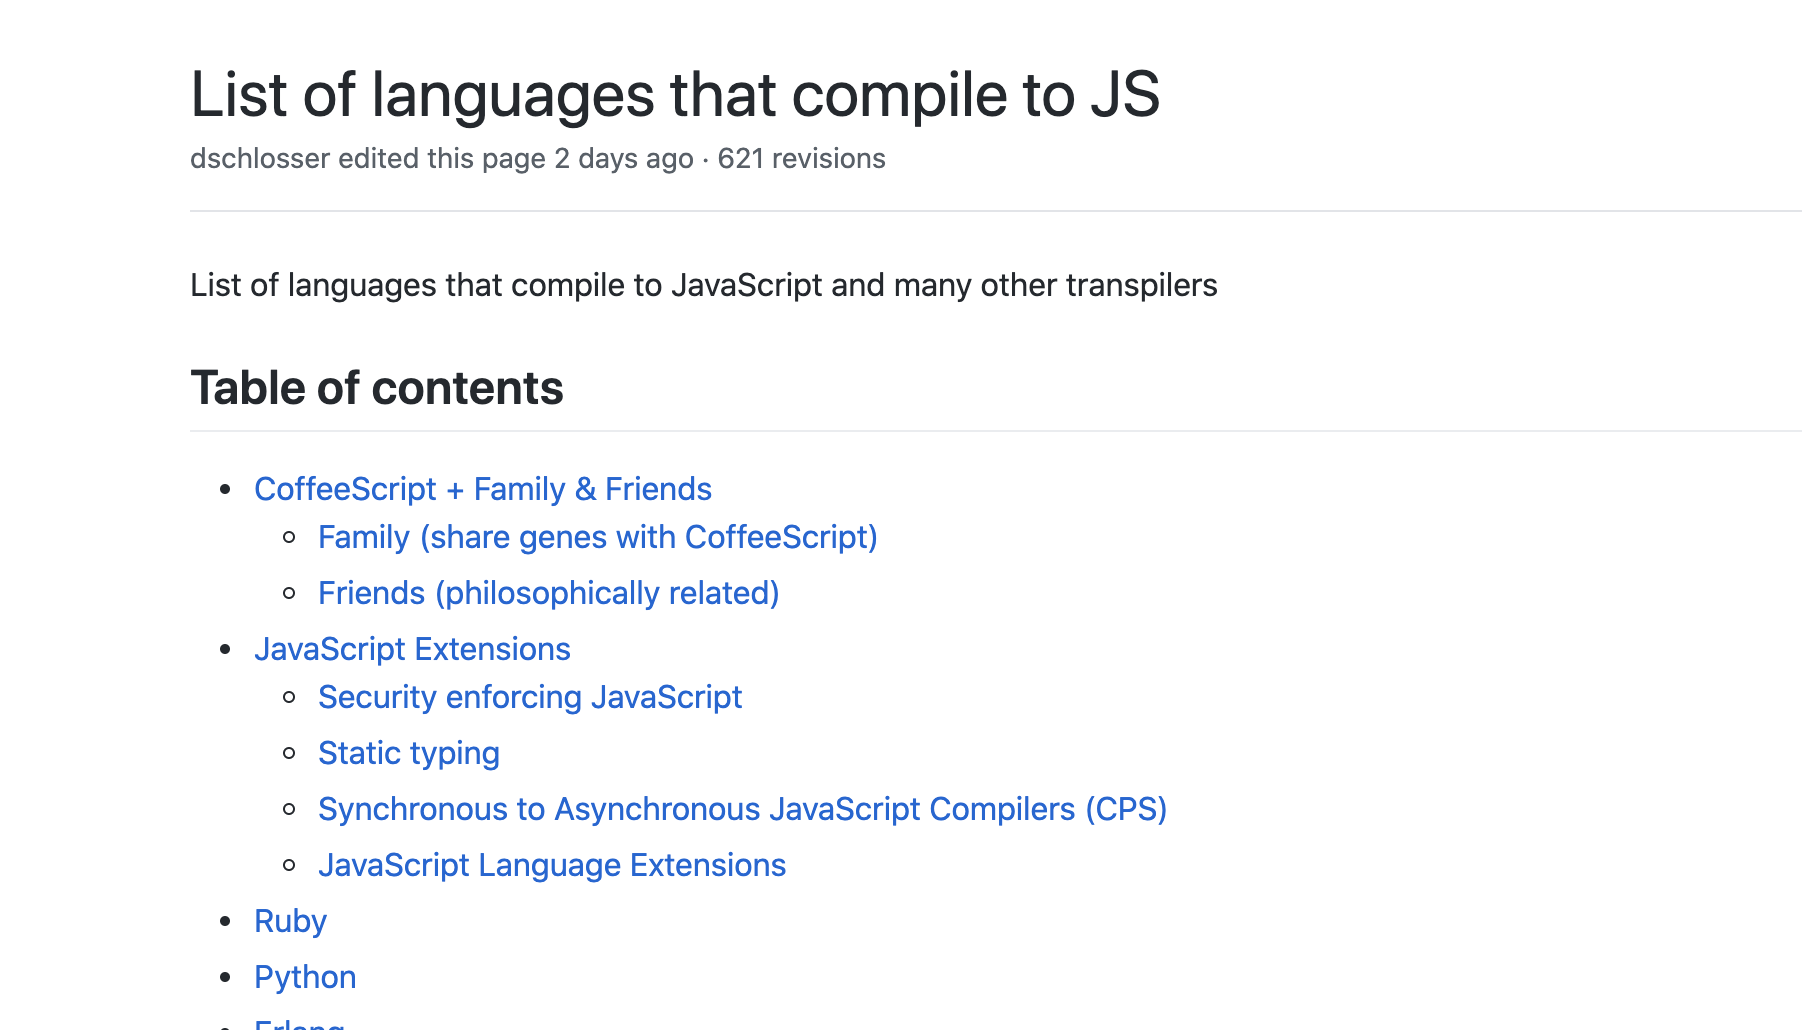 https://github.com/jashkenas/coffeescript/wiki/List-of-languages-that-compile-to-JS